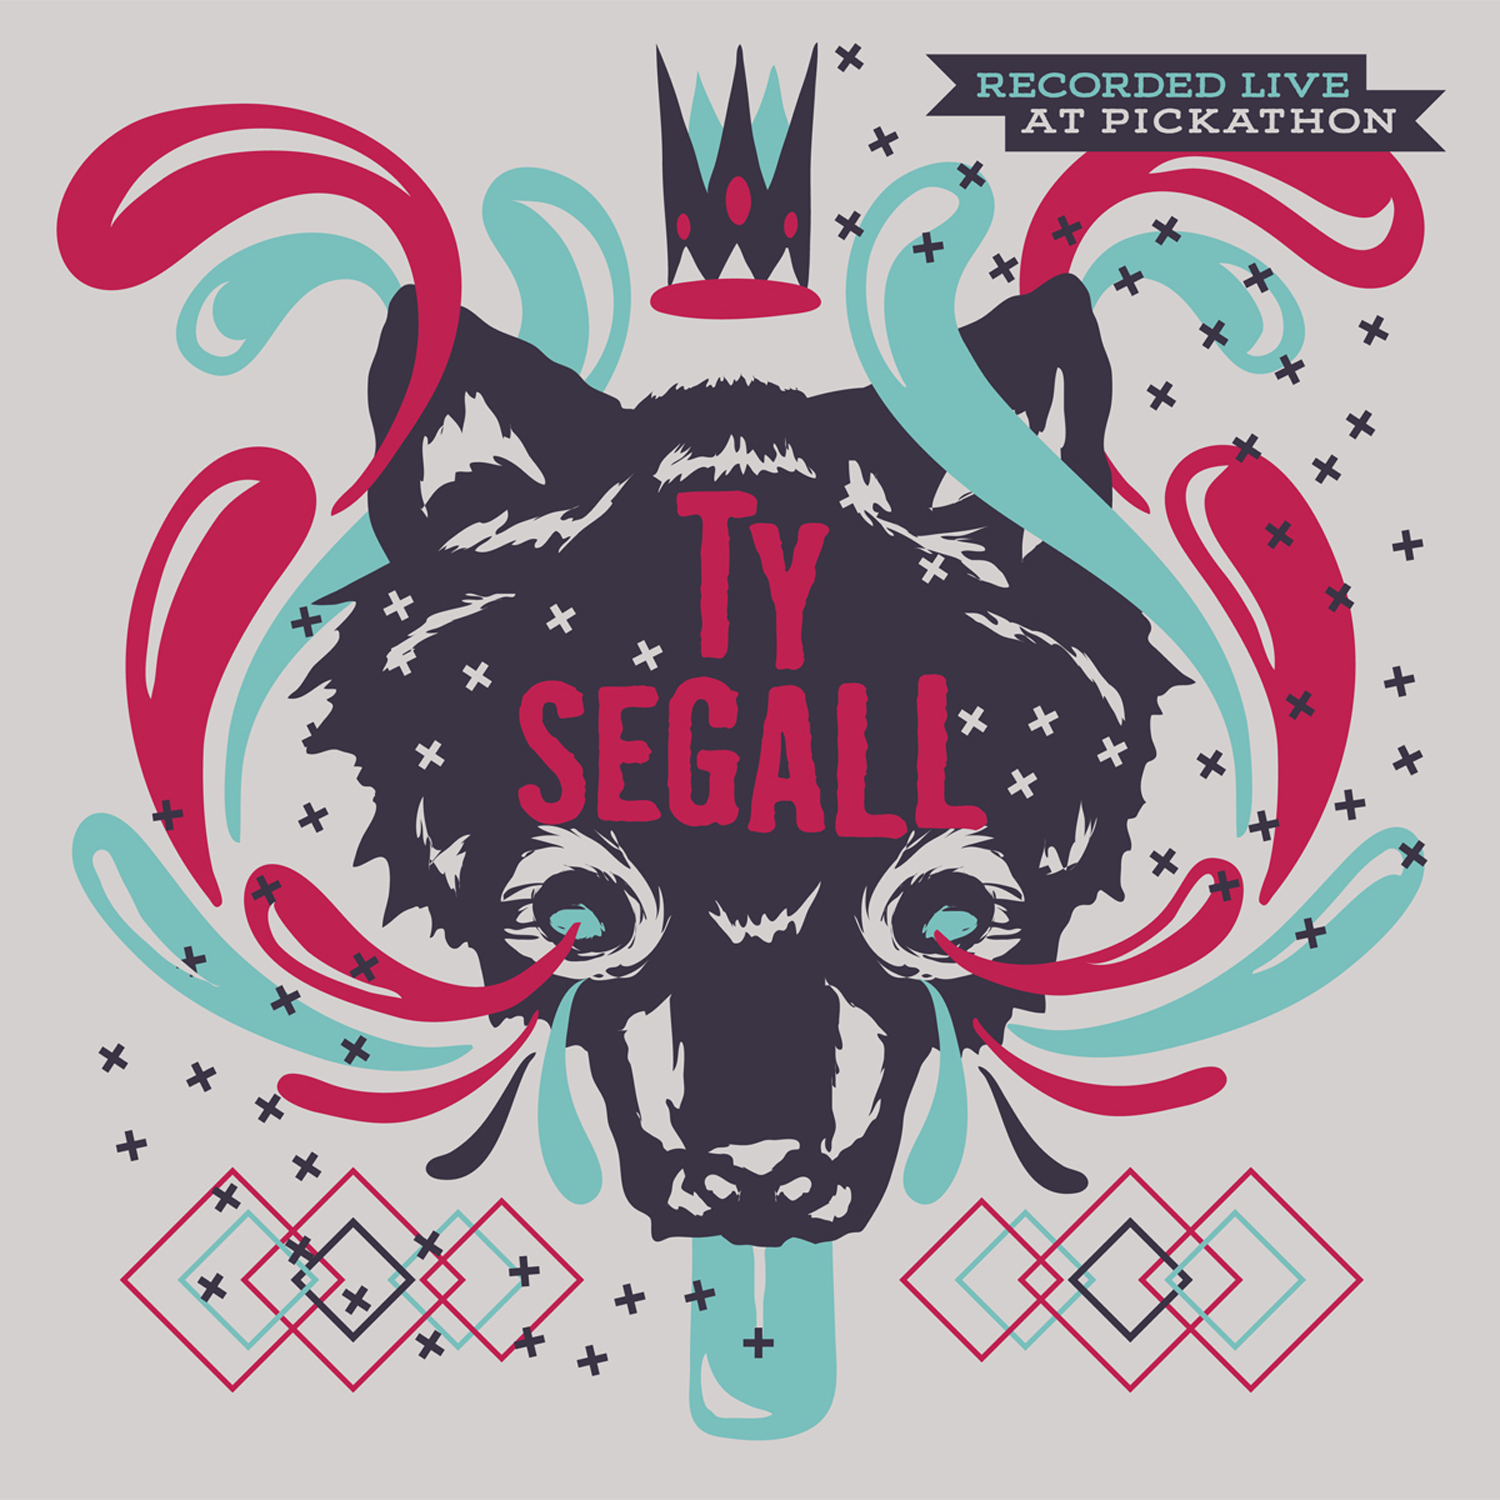 """Live at Pickathon: Ty Segall / King Tuff 12"""" LP - Easy Sound Recording Company"""